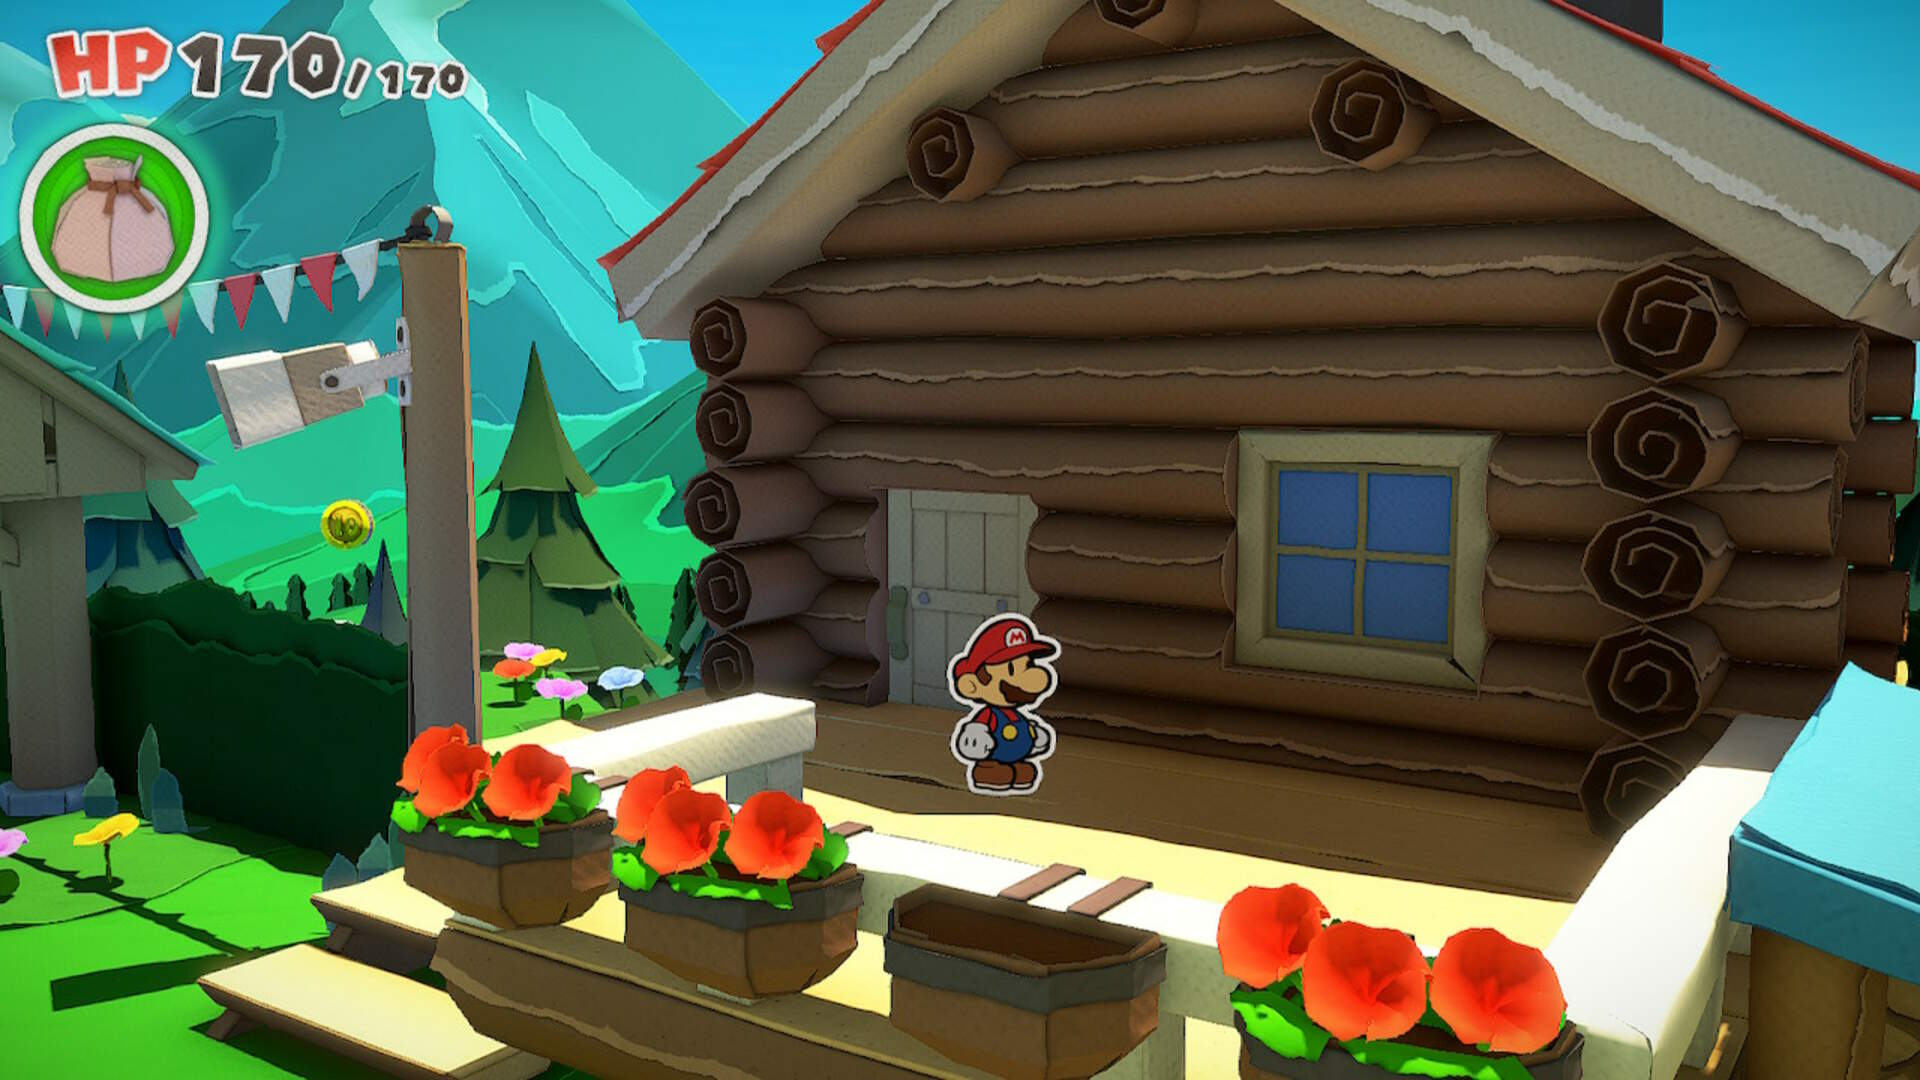 Paper Mario The Origami King: How to Get Into the Log Cabin in Whispering Woods